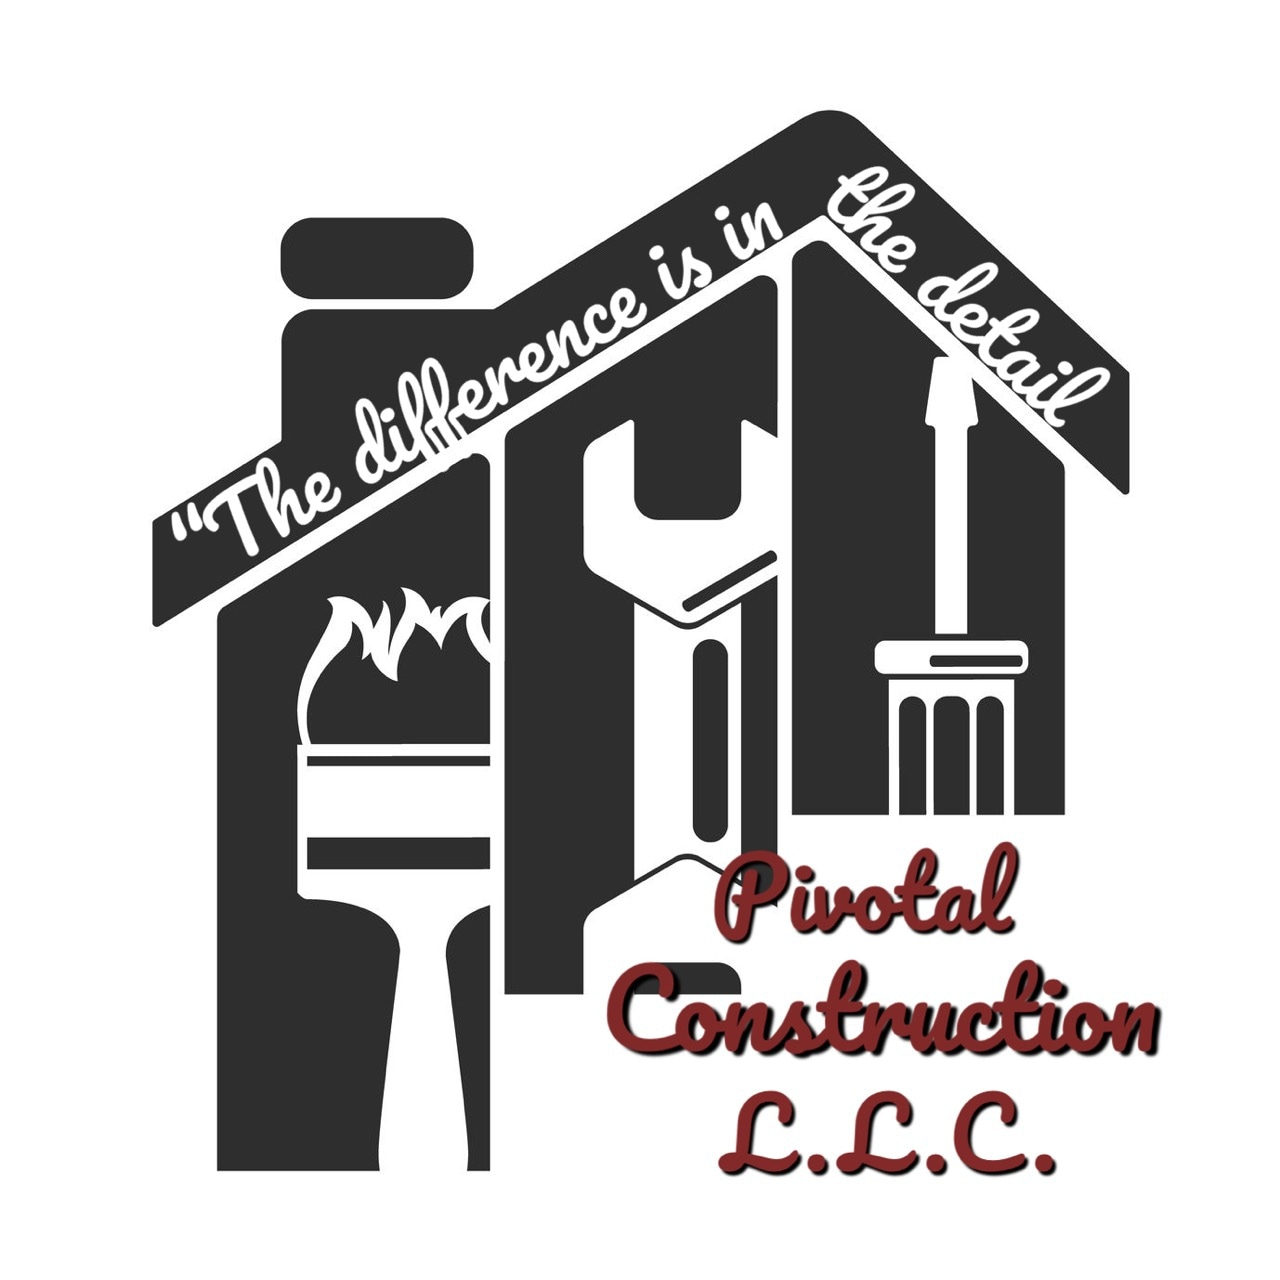 pivotal construction